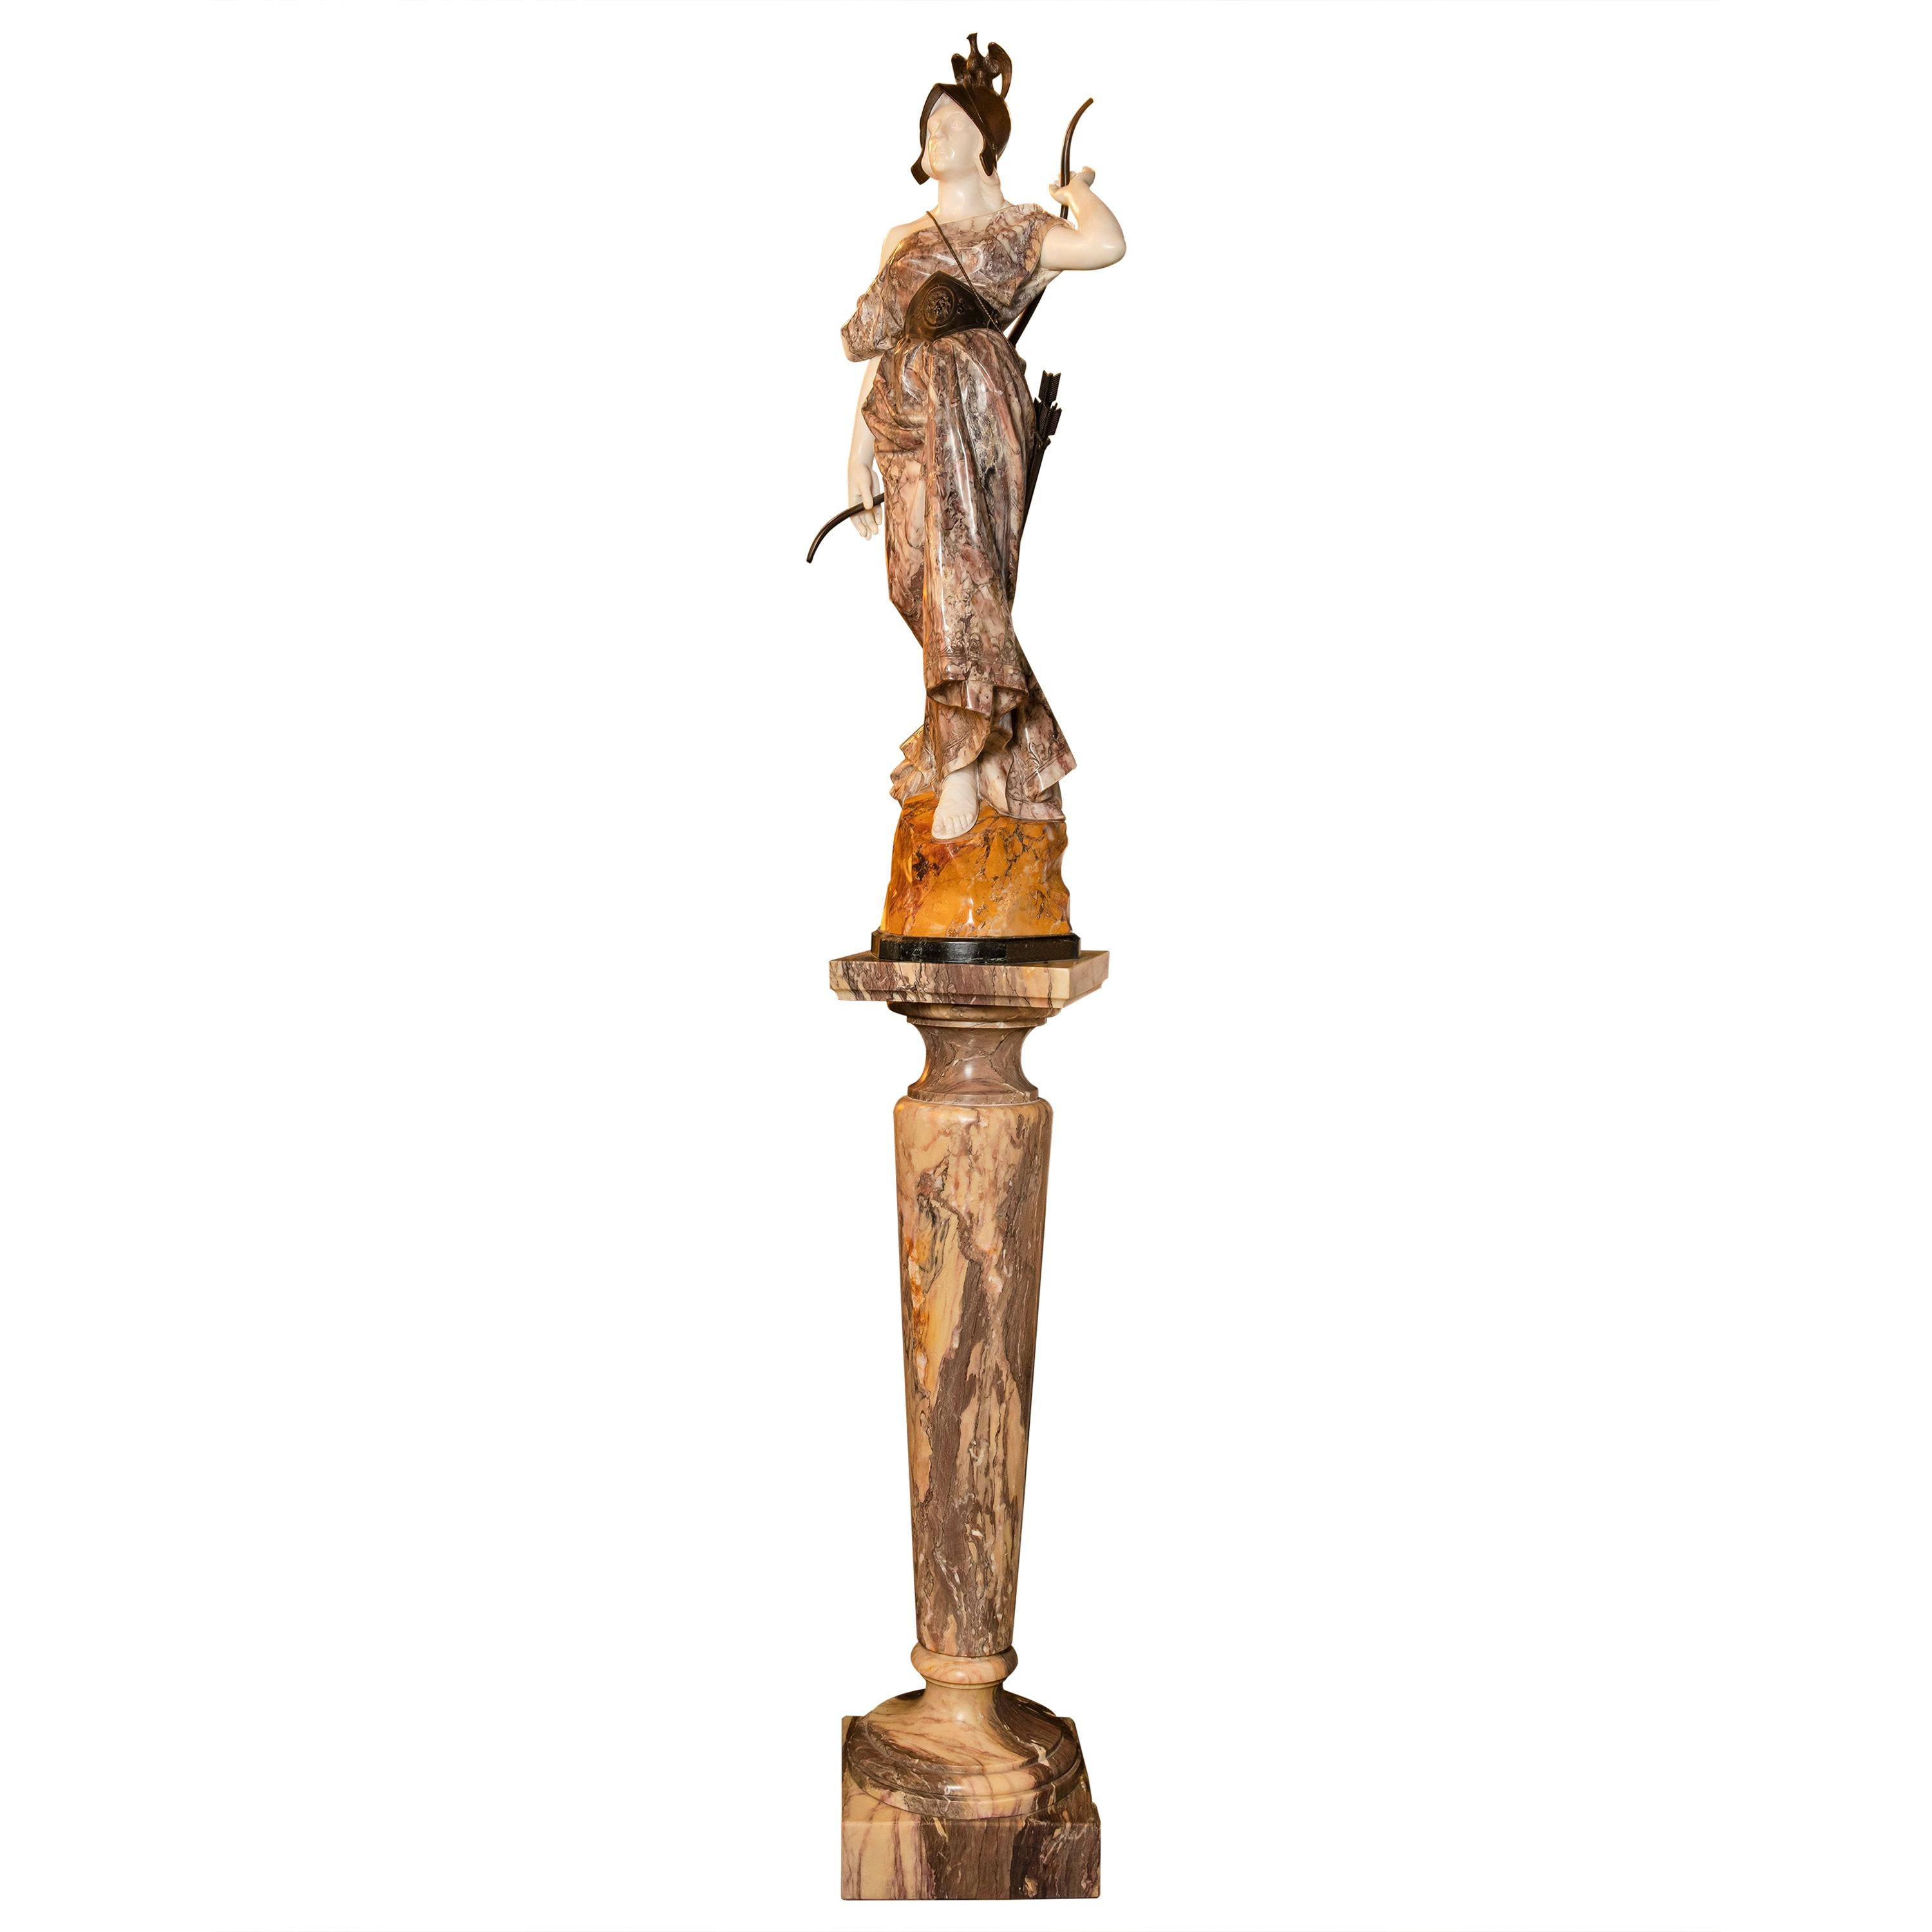 Marble and Broze Artemisa Sculture, Signed Pugi, Italy, circa 1870